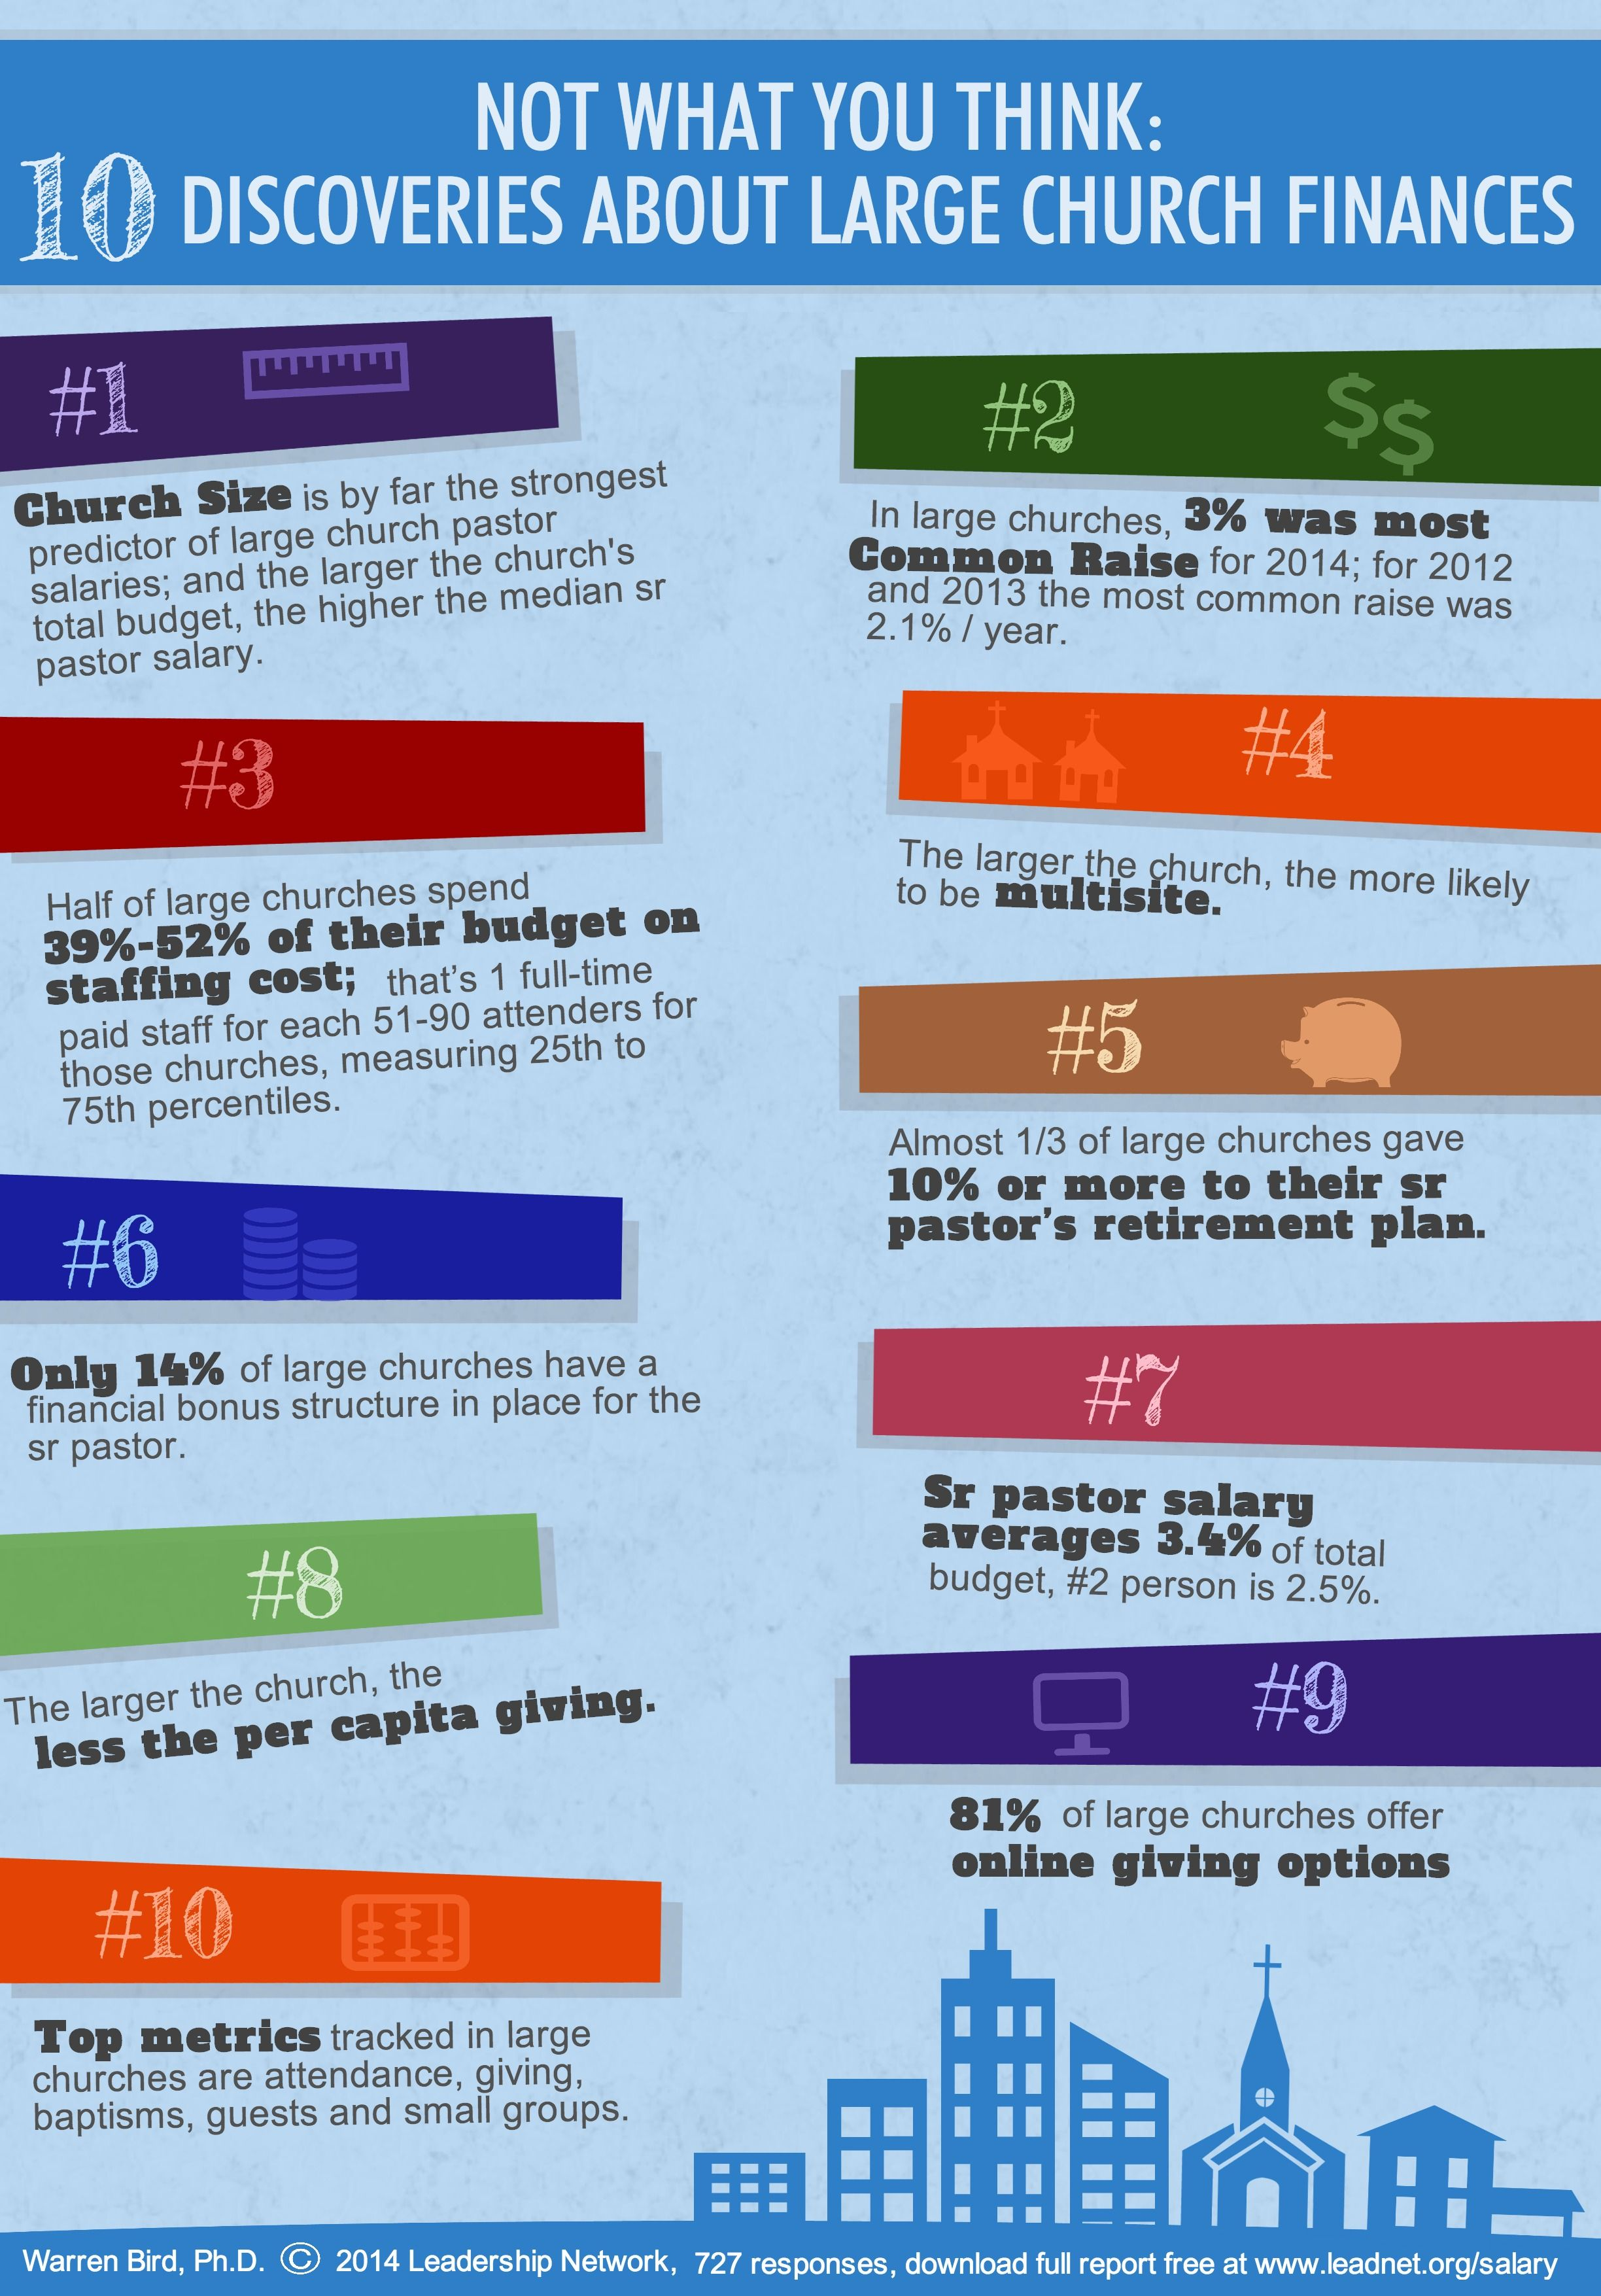 Top 10 Findings from Large Church Salary Report